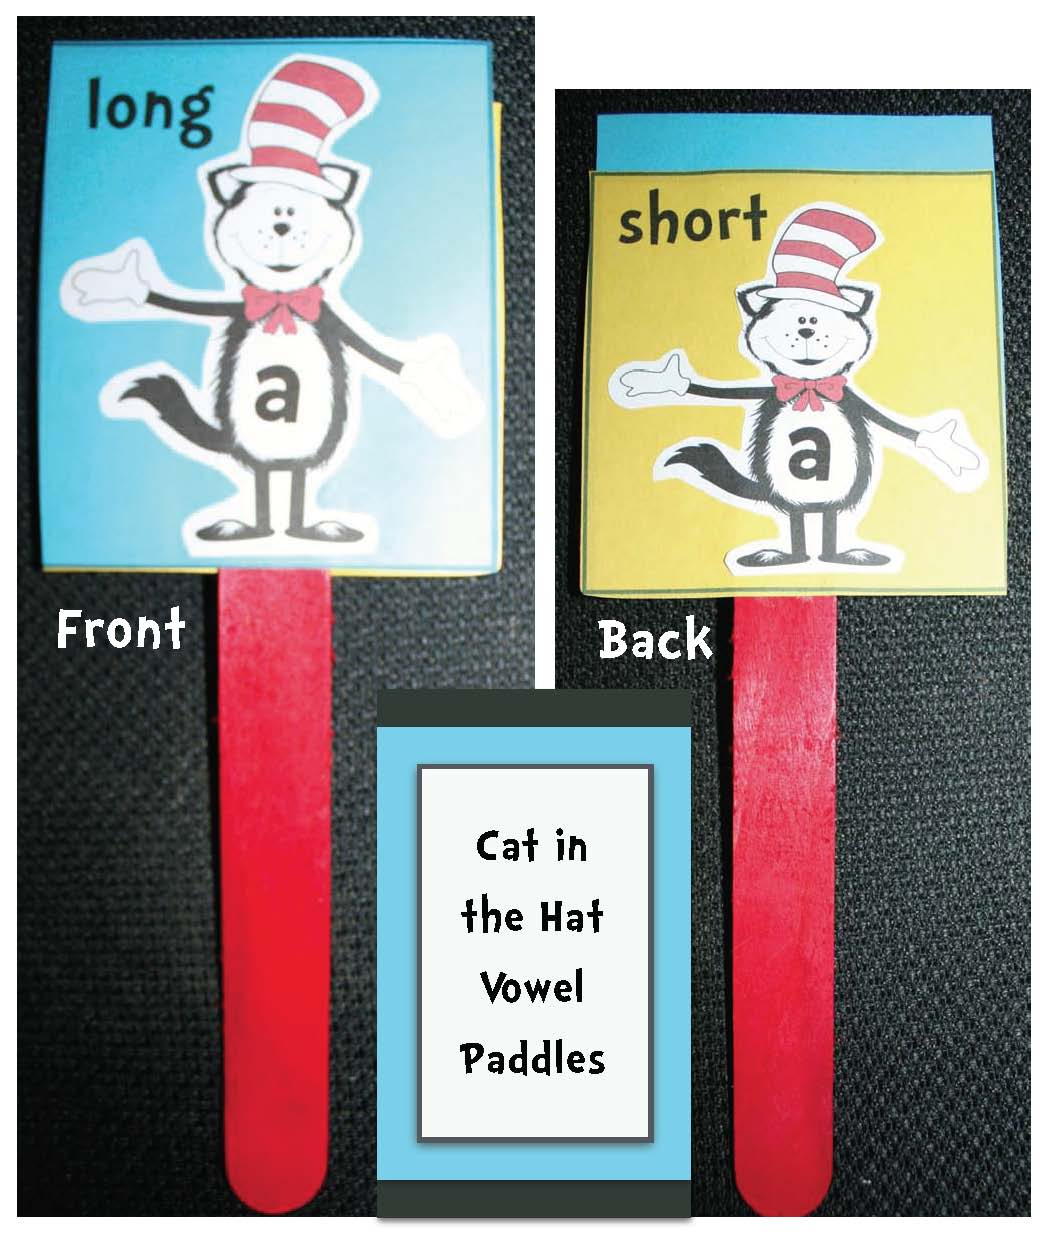 vowel activities, cat in the hat activities, seuss activities, seuss crafts, daily 5 word work, seuss word work, common core seuss, activities to go with seuss books, cat in the hat activities, whole group assessing, alphabet activities, alphabet games, alphabet assessments